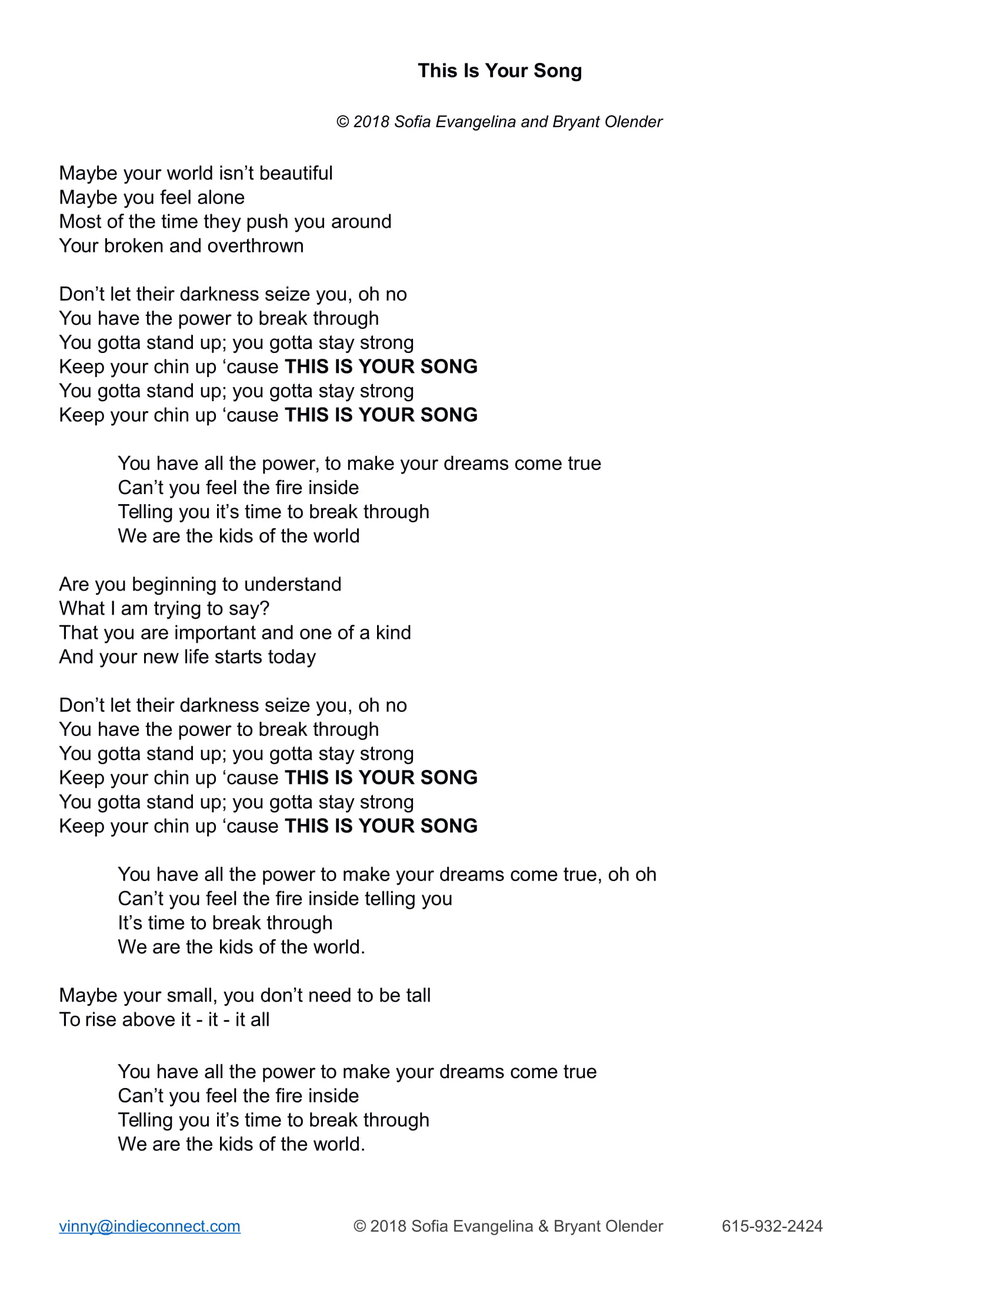 This Is Your Song lyrics-1.jpg